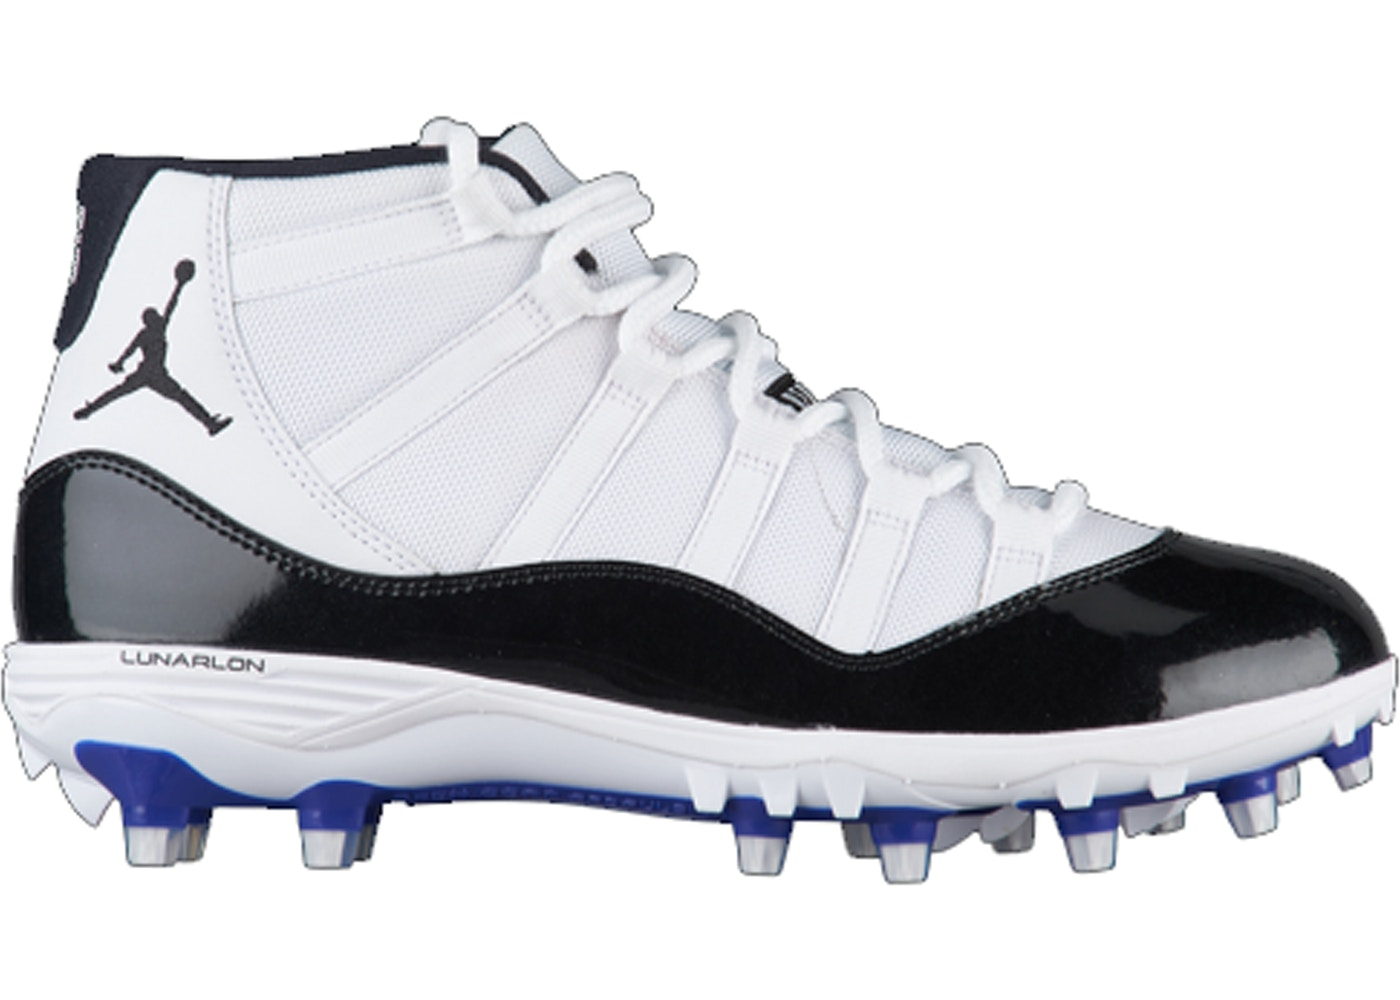 a9c34858849e58 Jordan 11 Retro Cleat Concord - AO1561-123